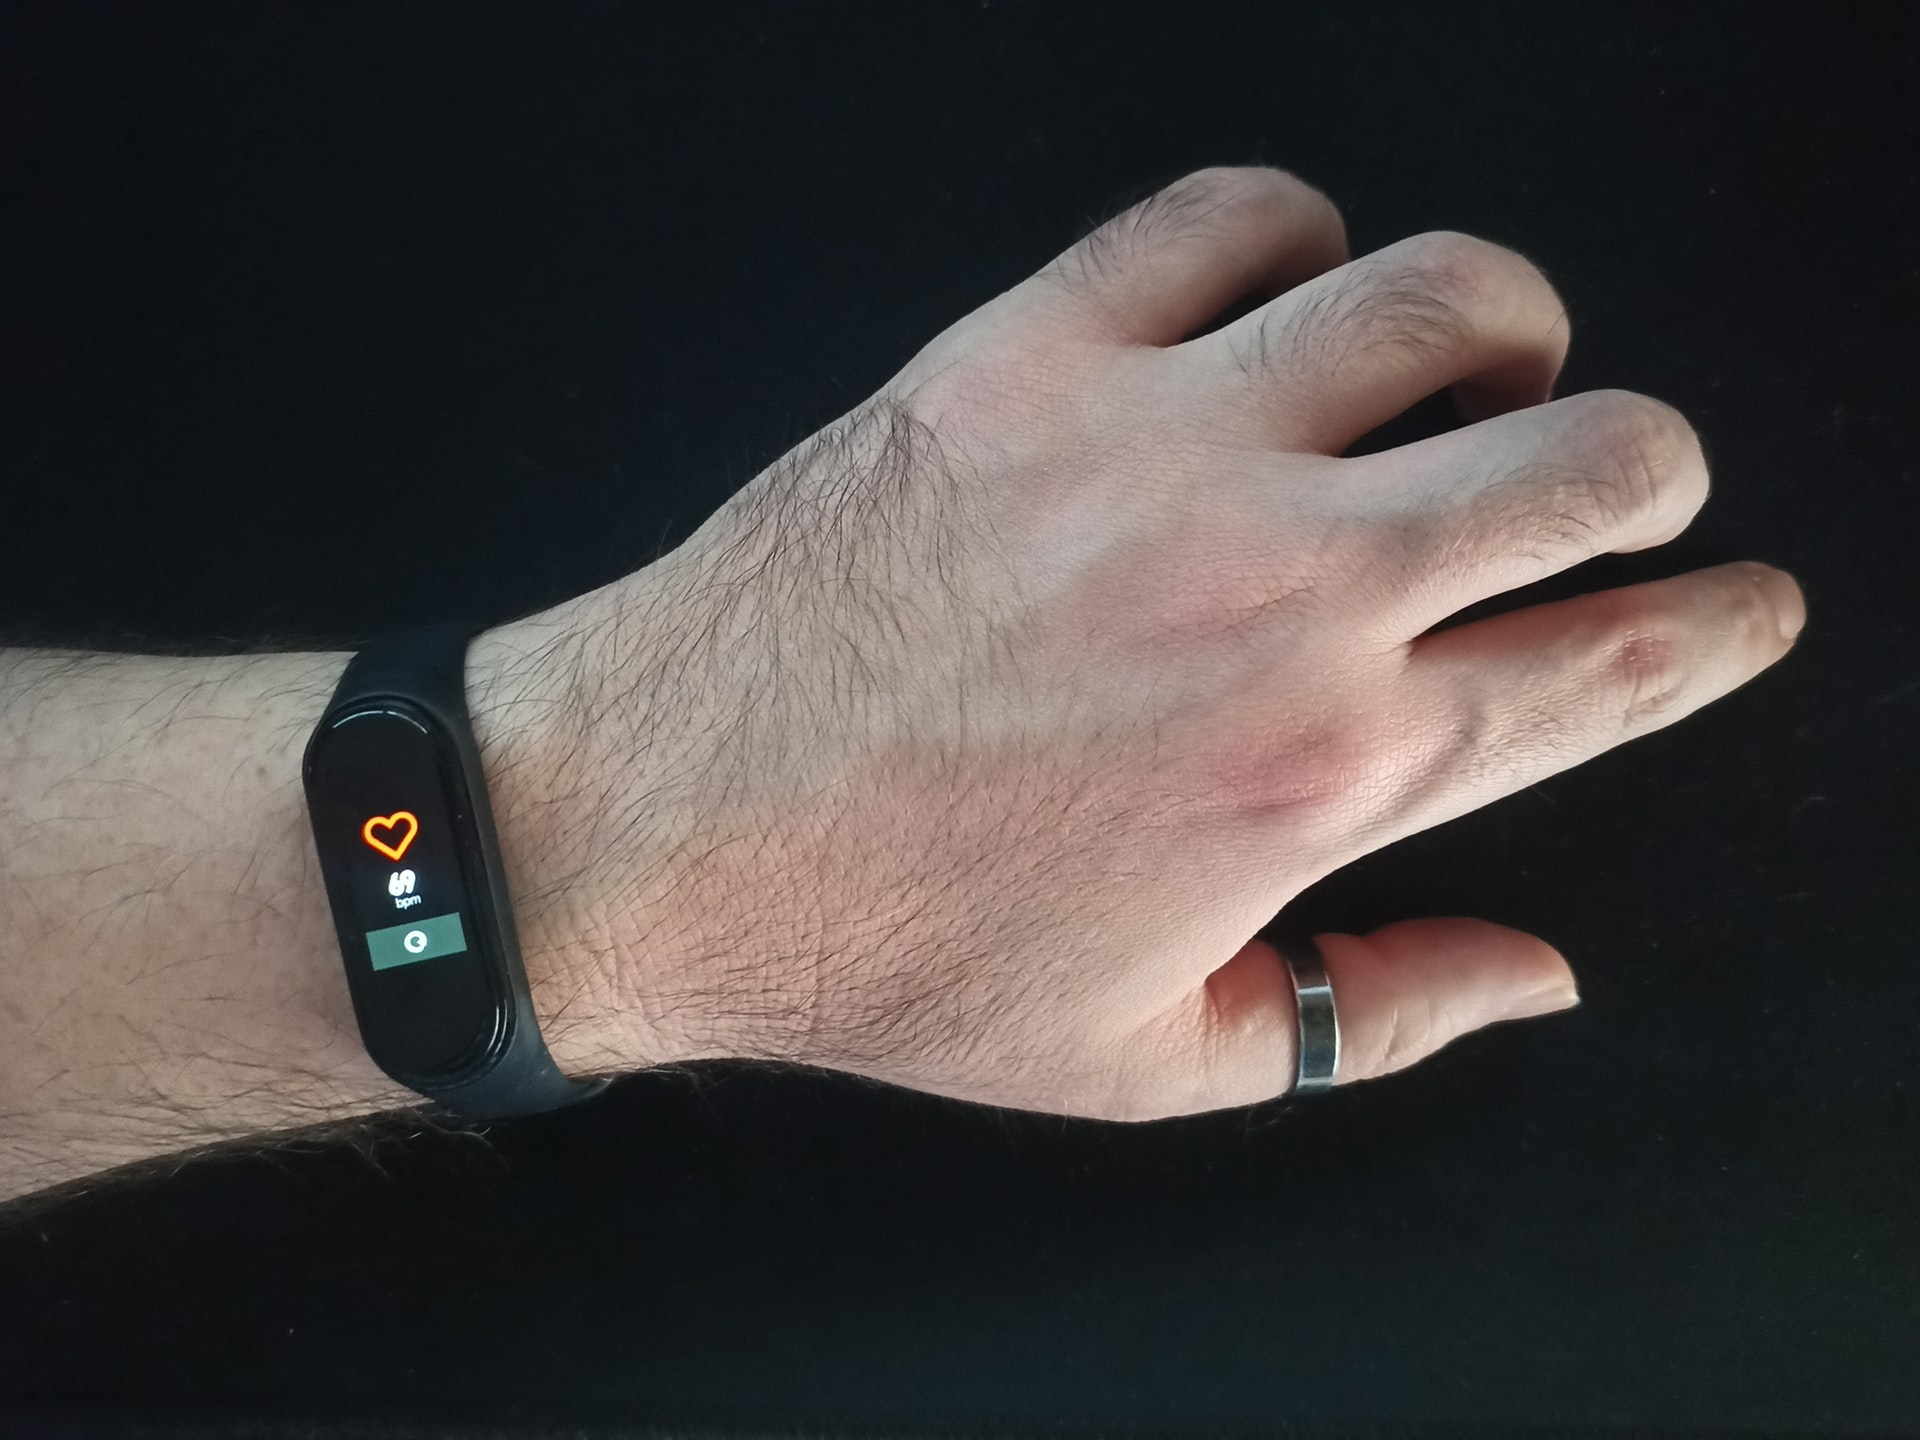 Things You Should Know About Fitness Wearable Technology